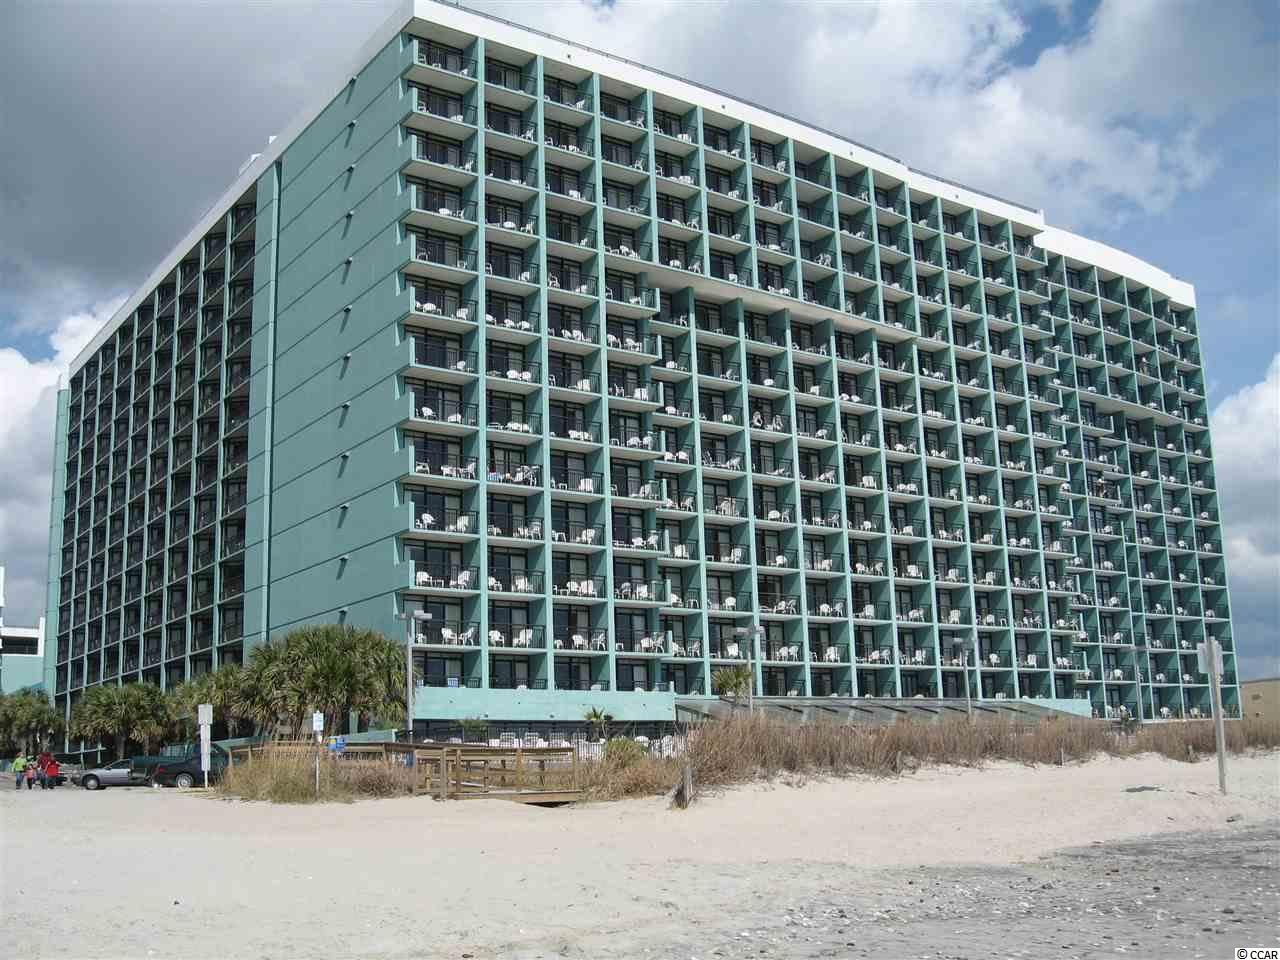 Ocean View,End Unit Condo in Landmark Resort : Myrtle Beach South Carolina